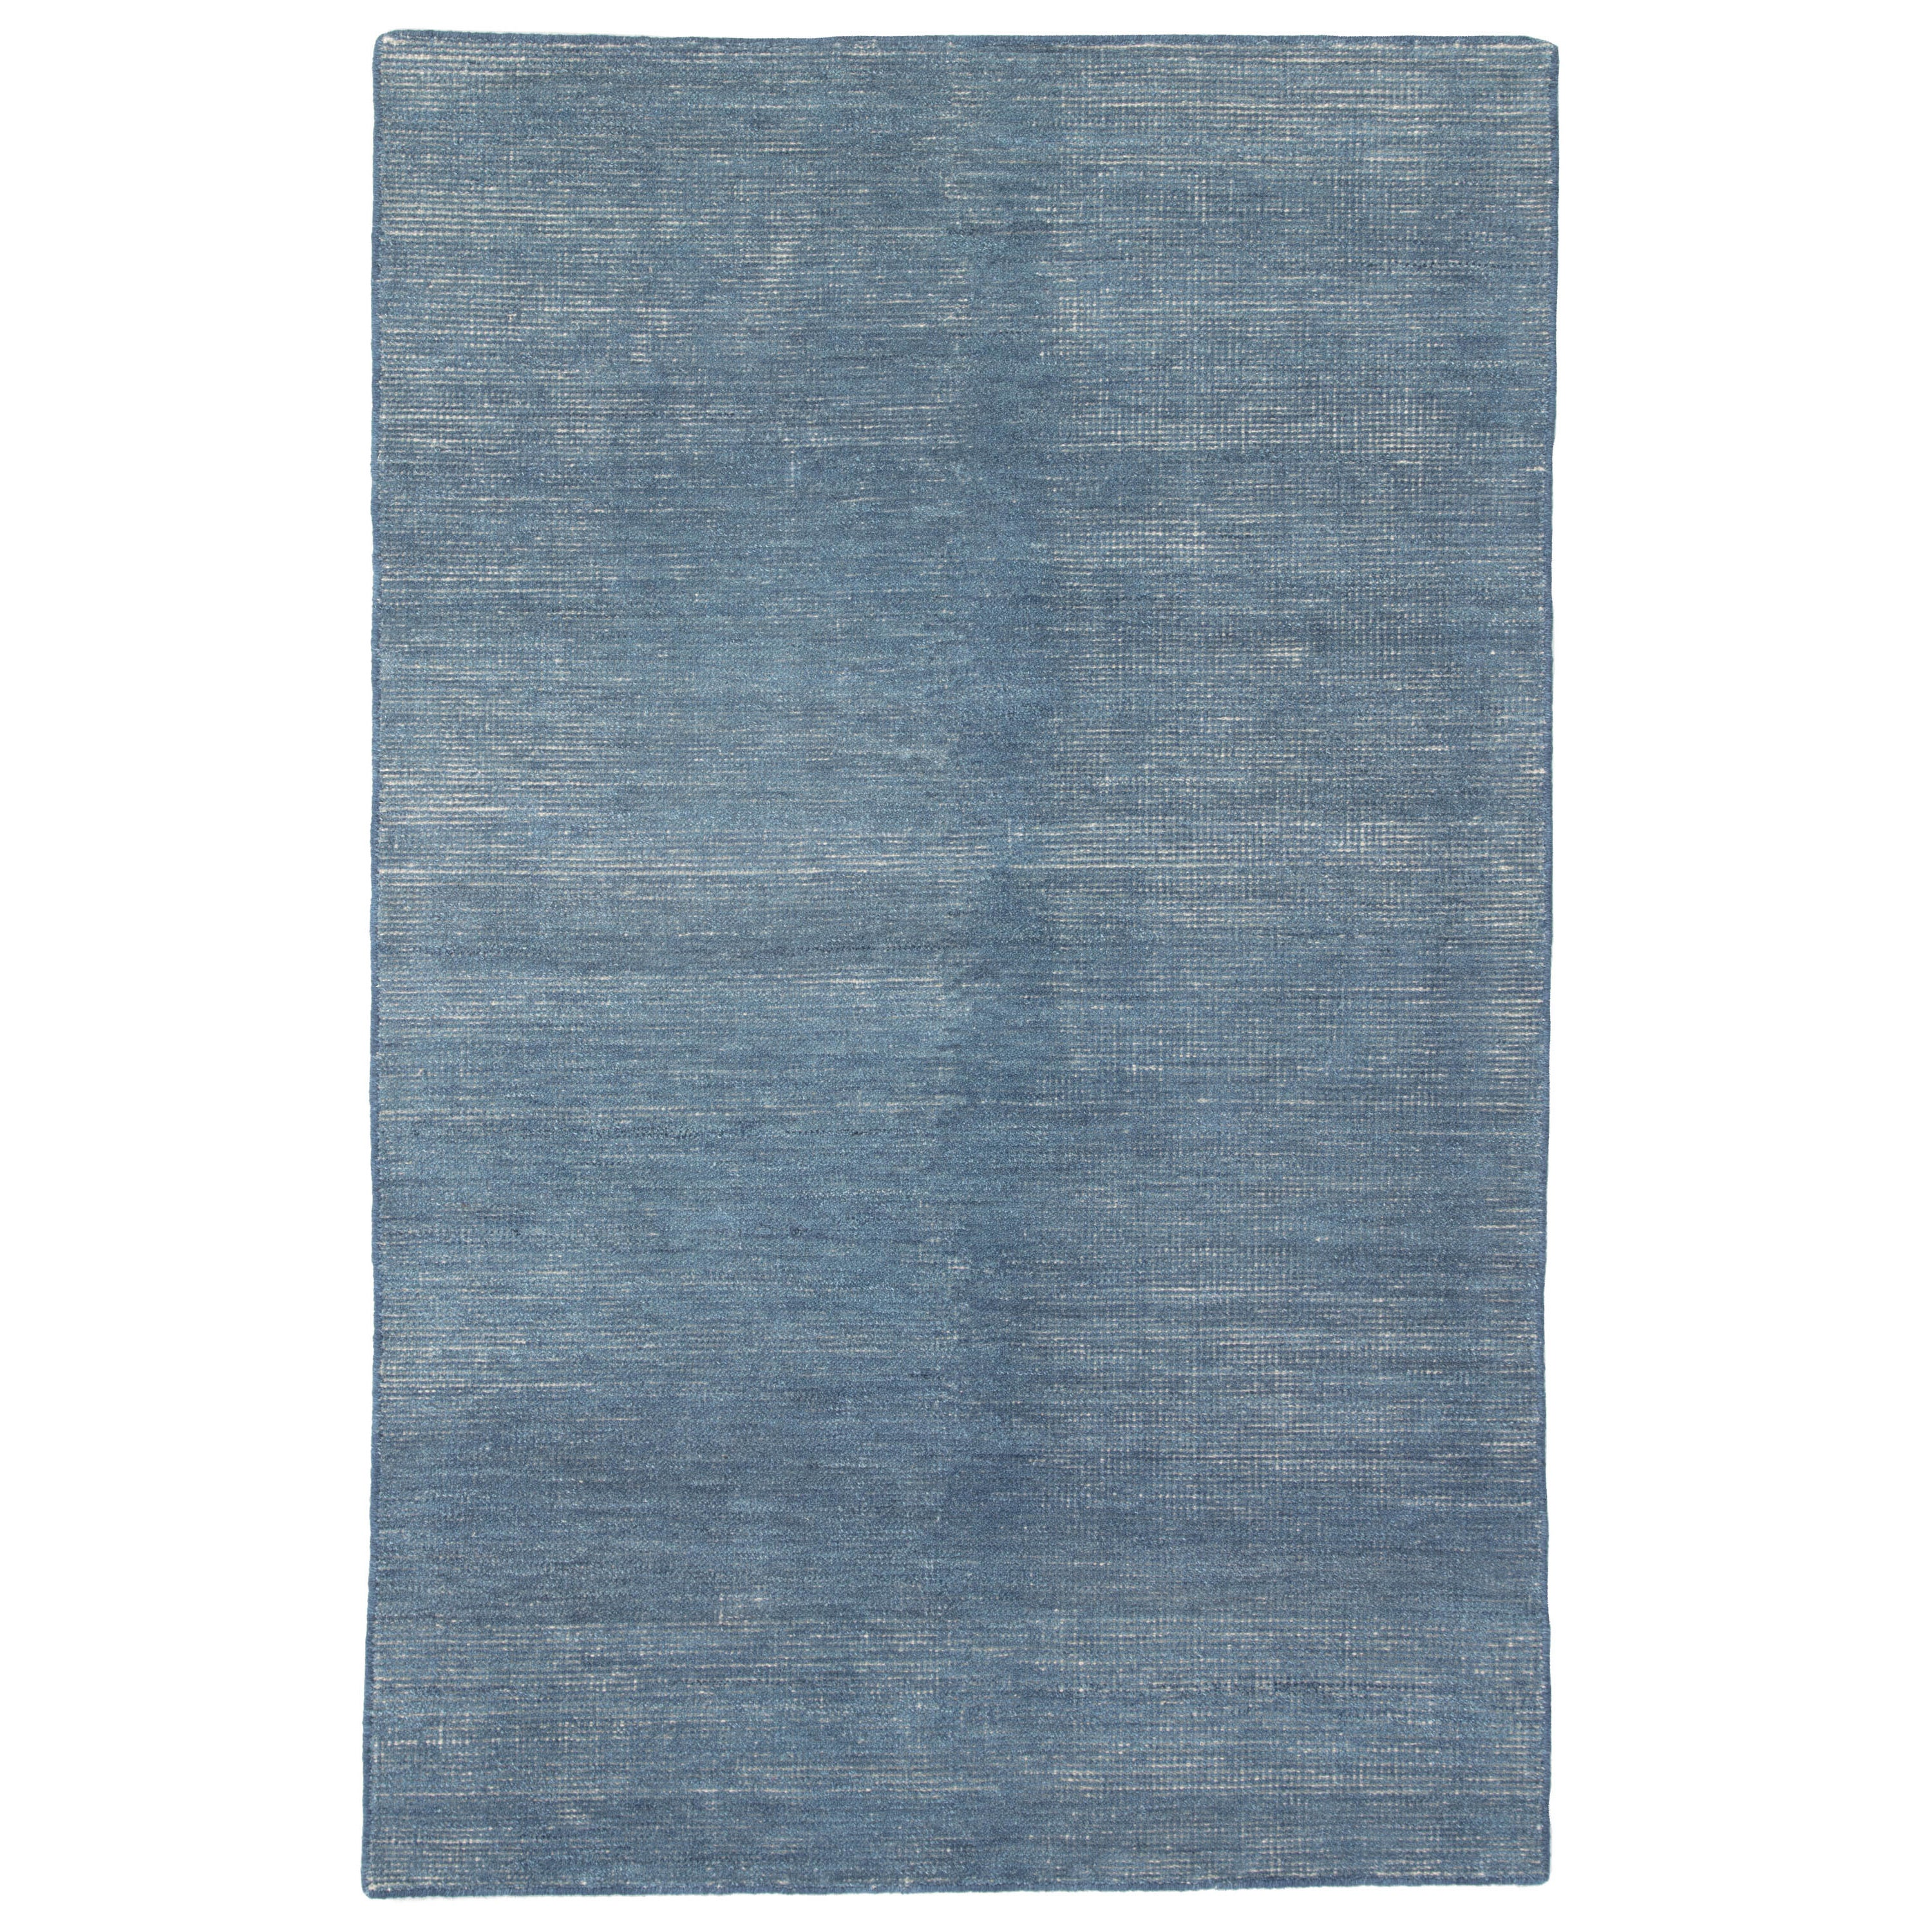 Rectangle Blue Solid Hand Knotted Blends Transitional recommended for Bedroom, Bathroom, Dining Room, Office, Hallway, Living Room